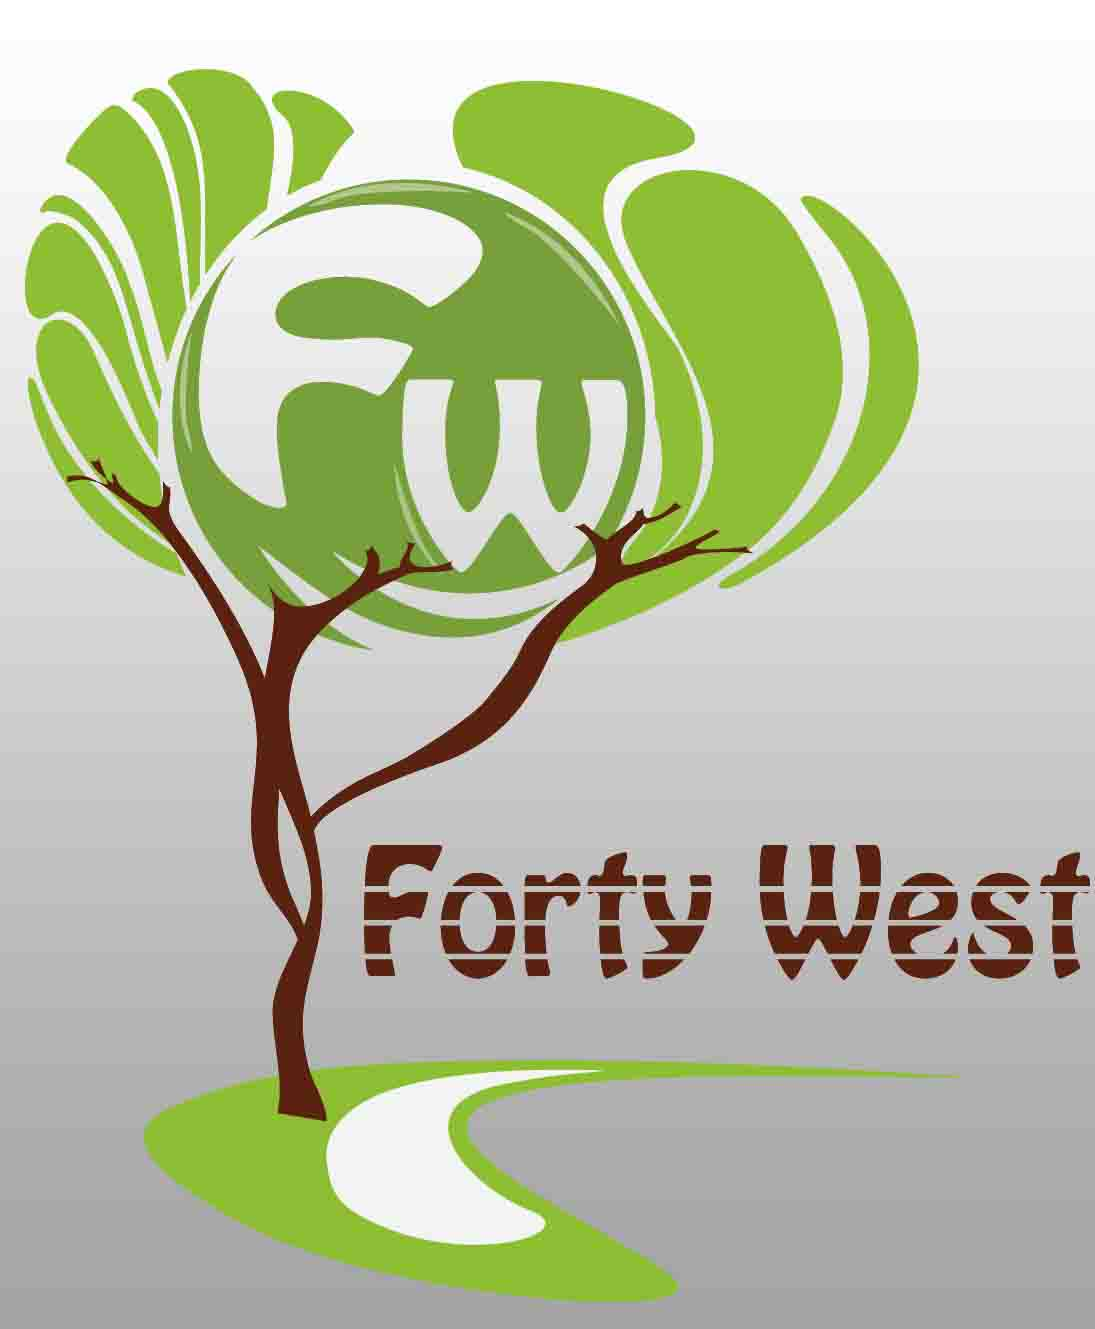 Logo Design by Aj Ong - Entry No. 65 in the Logo Design Contest Unique Logo Design Wanted for Forty West.